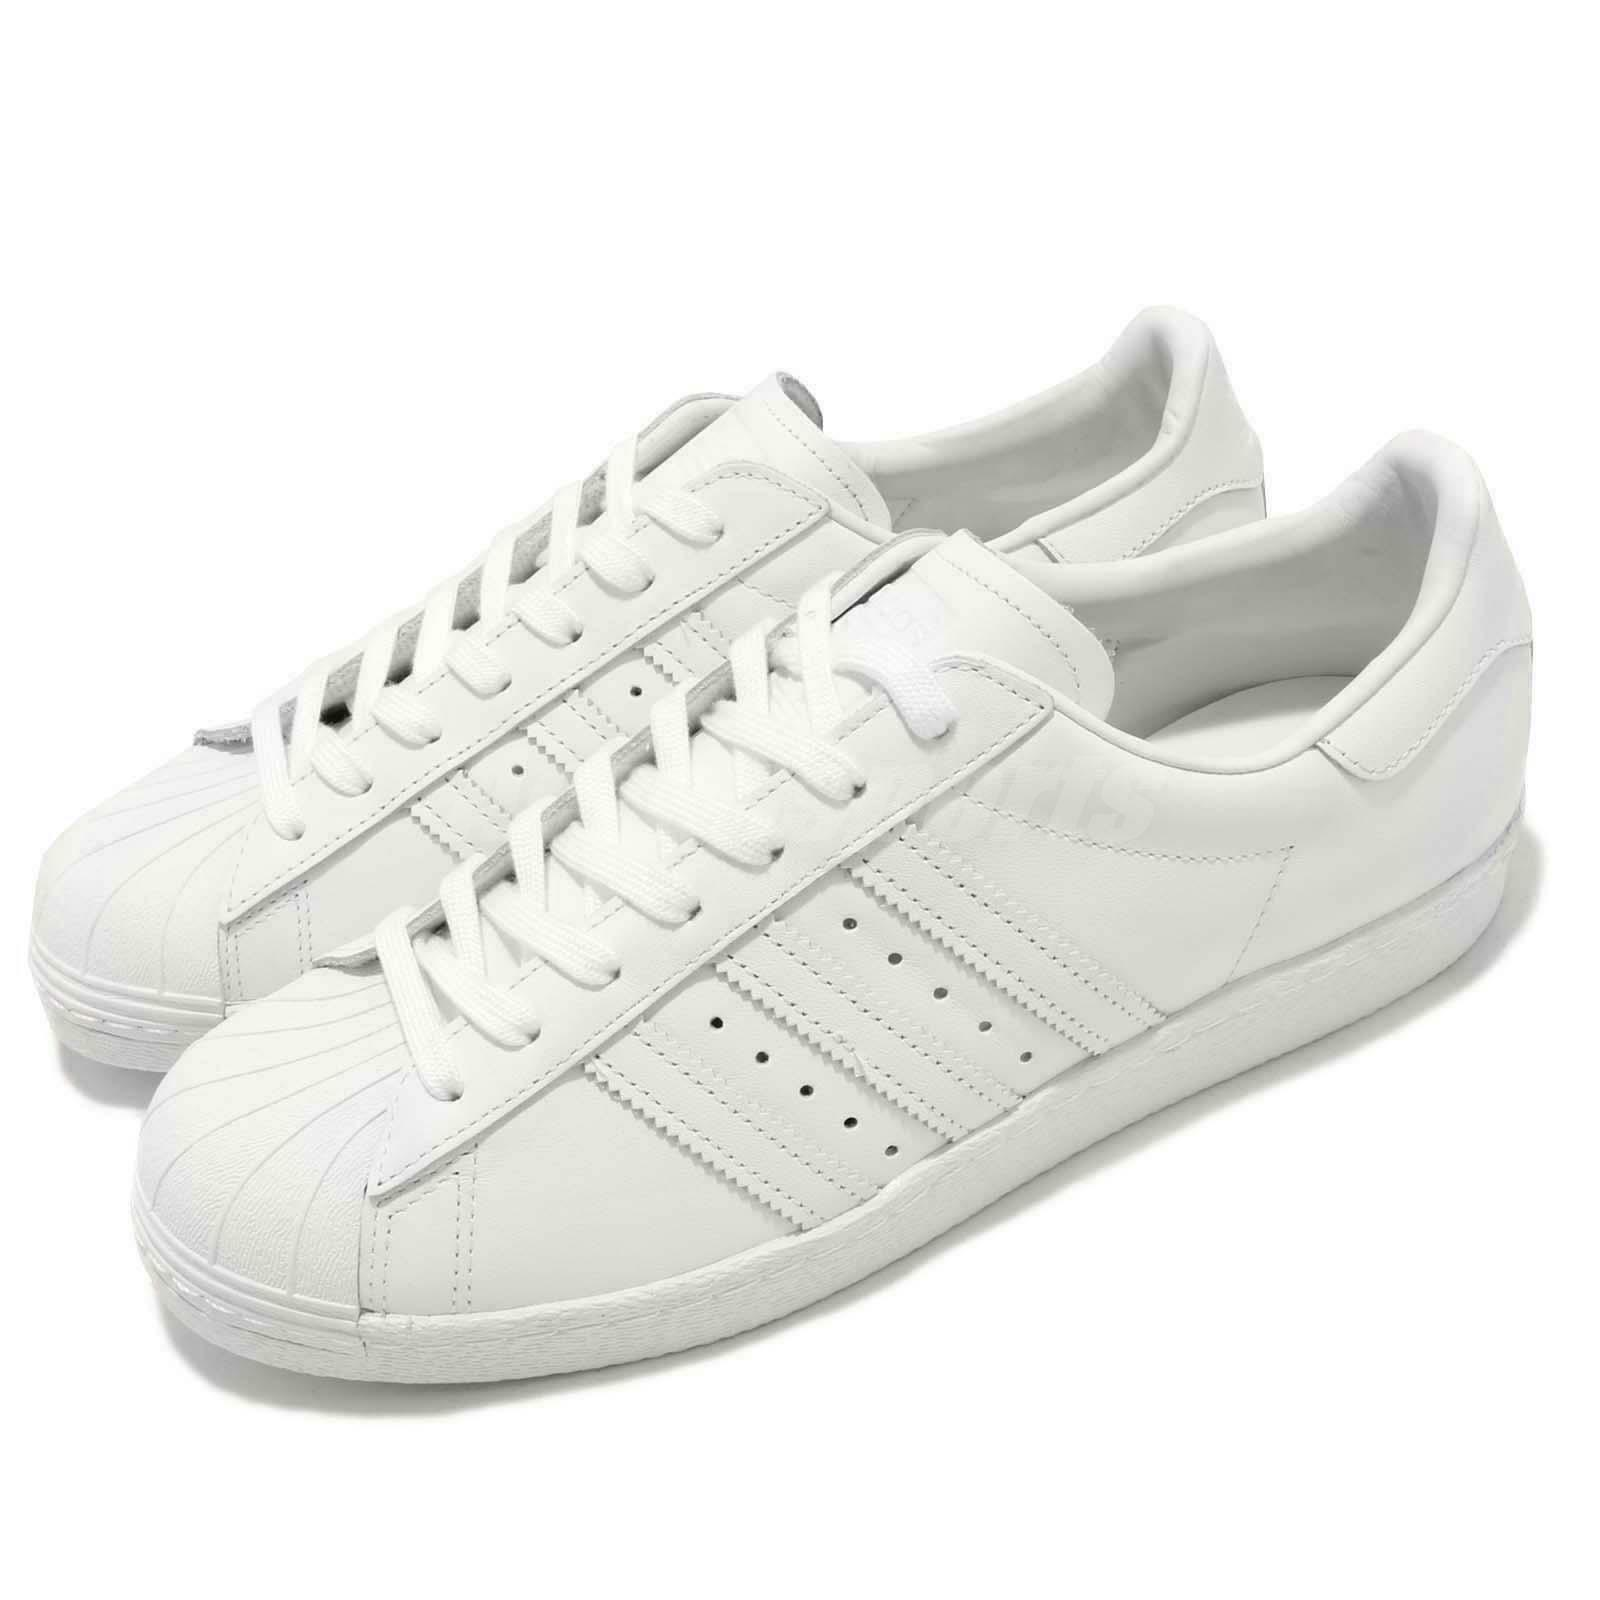 Adidas Originals Superstar 80s Triple White Men Women Casual shoes Sneaker S79443